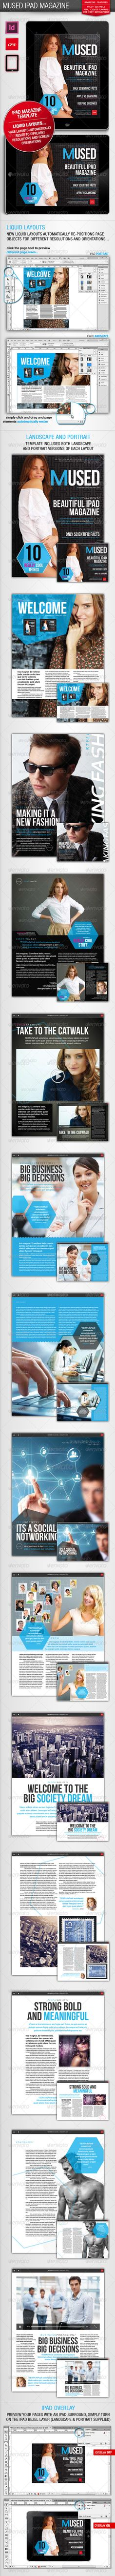 Mused iPad Magazine  Horizontal and vertical layouts in one